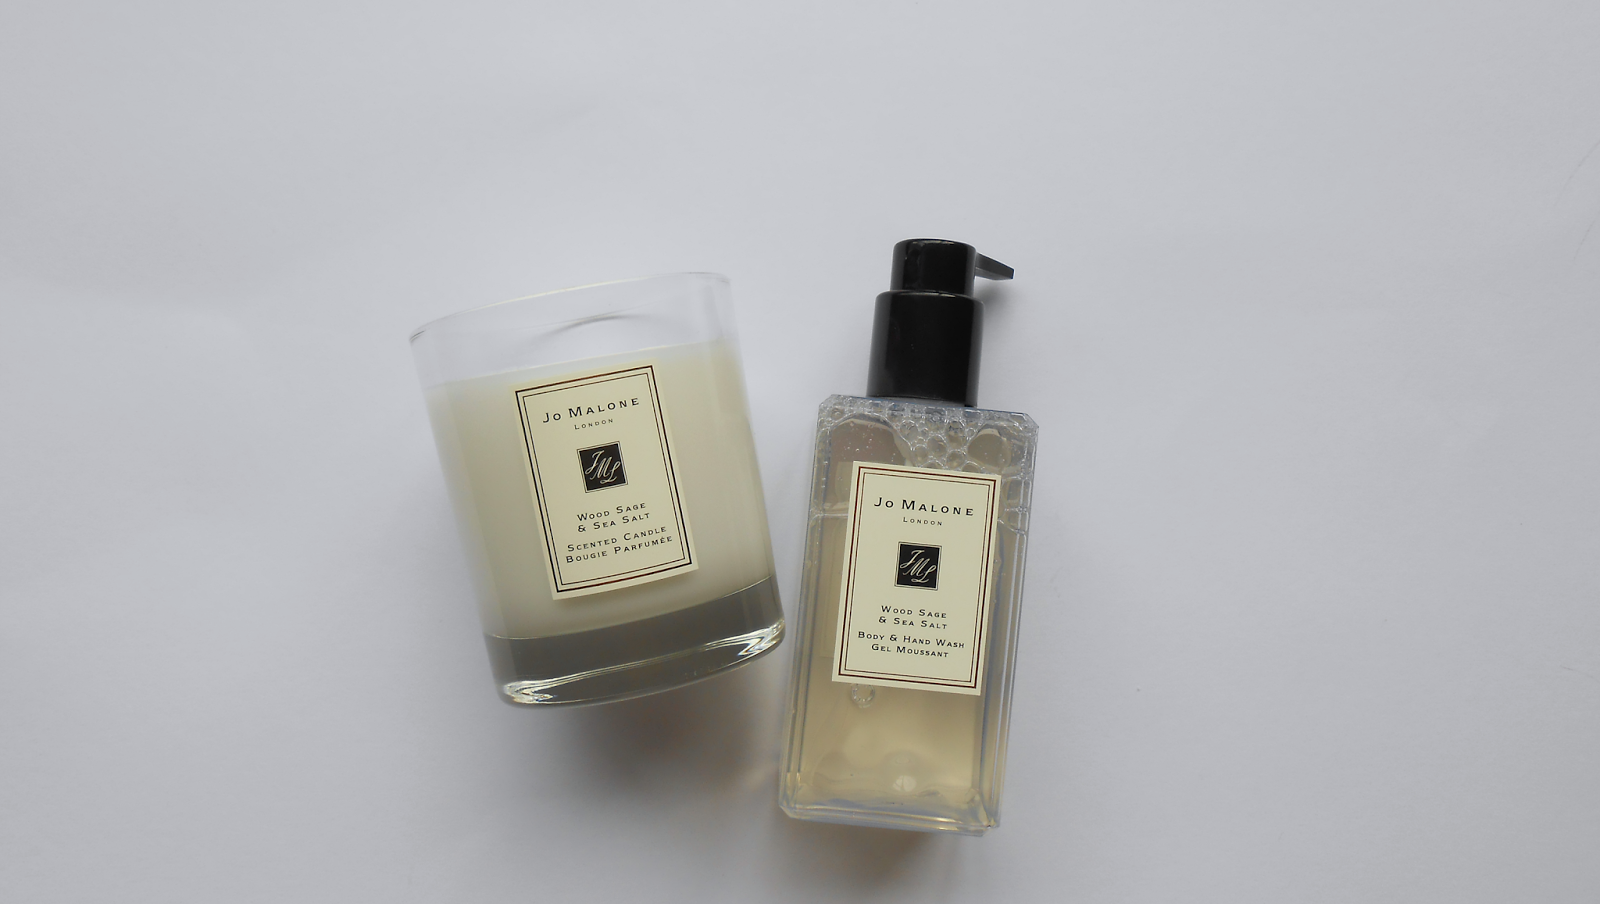 Jo Malone Wood Sage & Sea Salt Body & Hand Wash